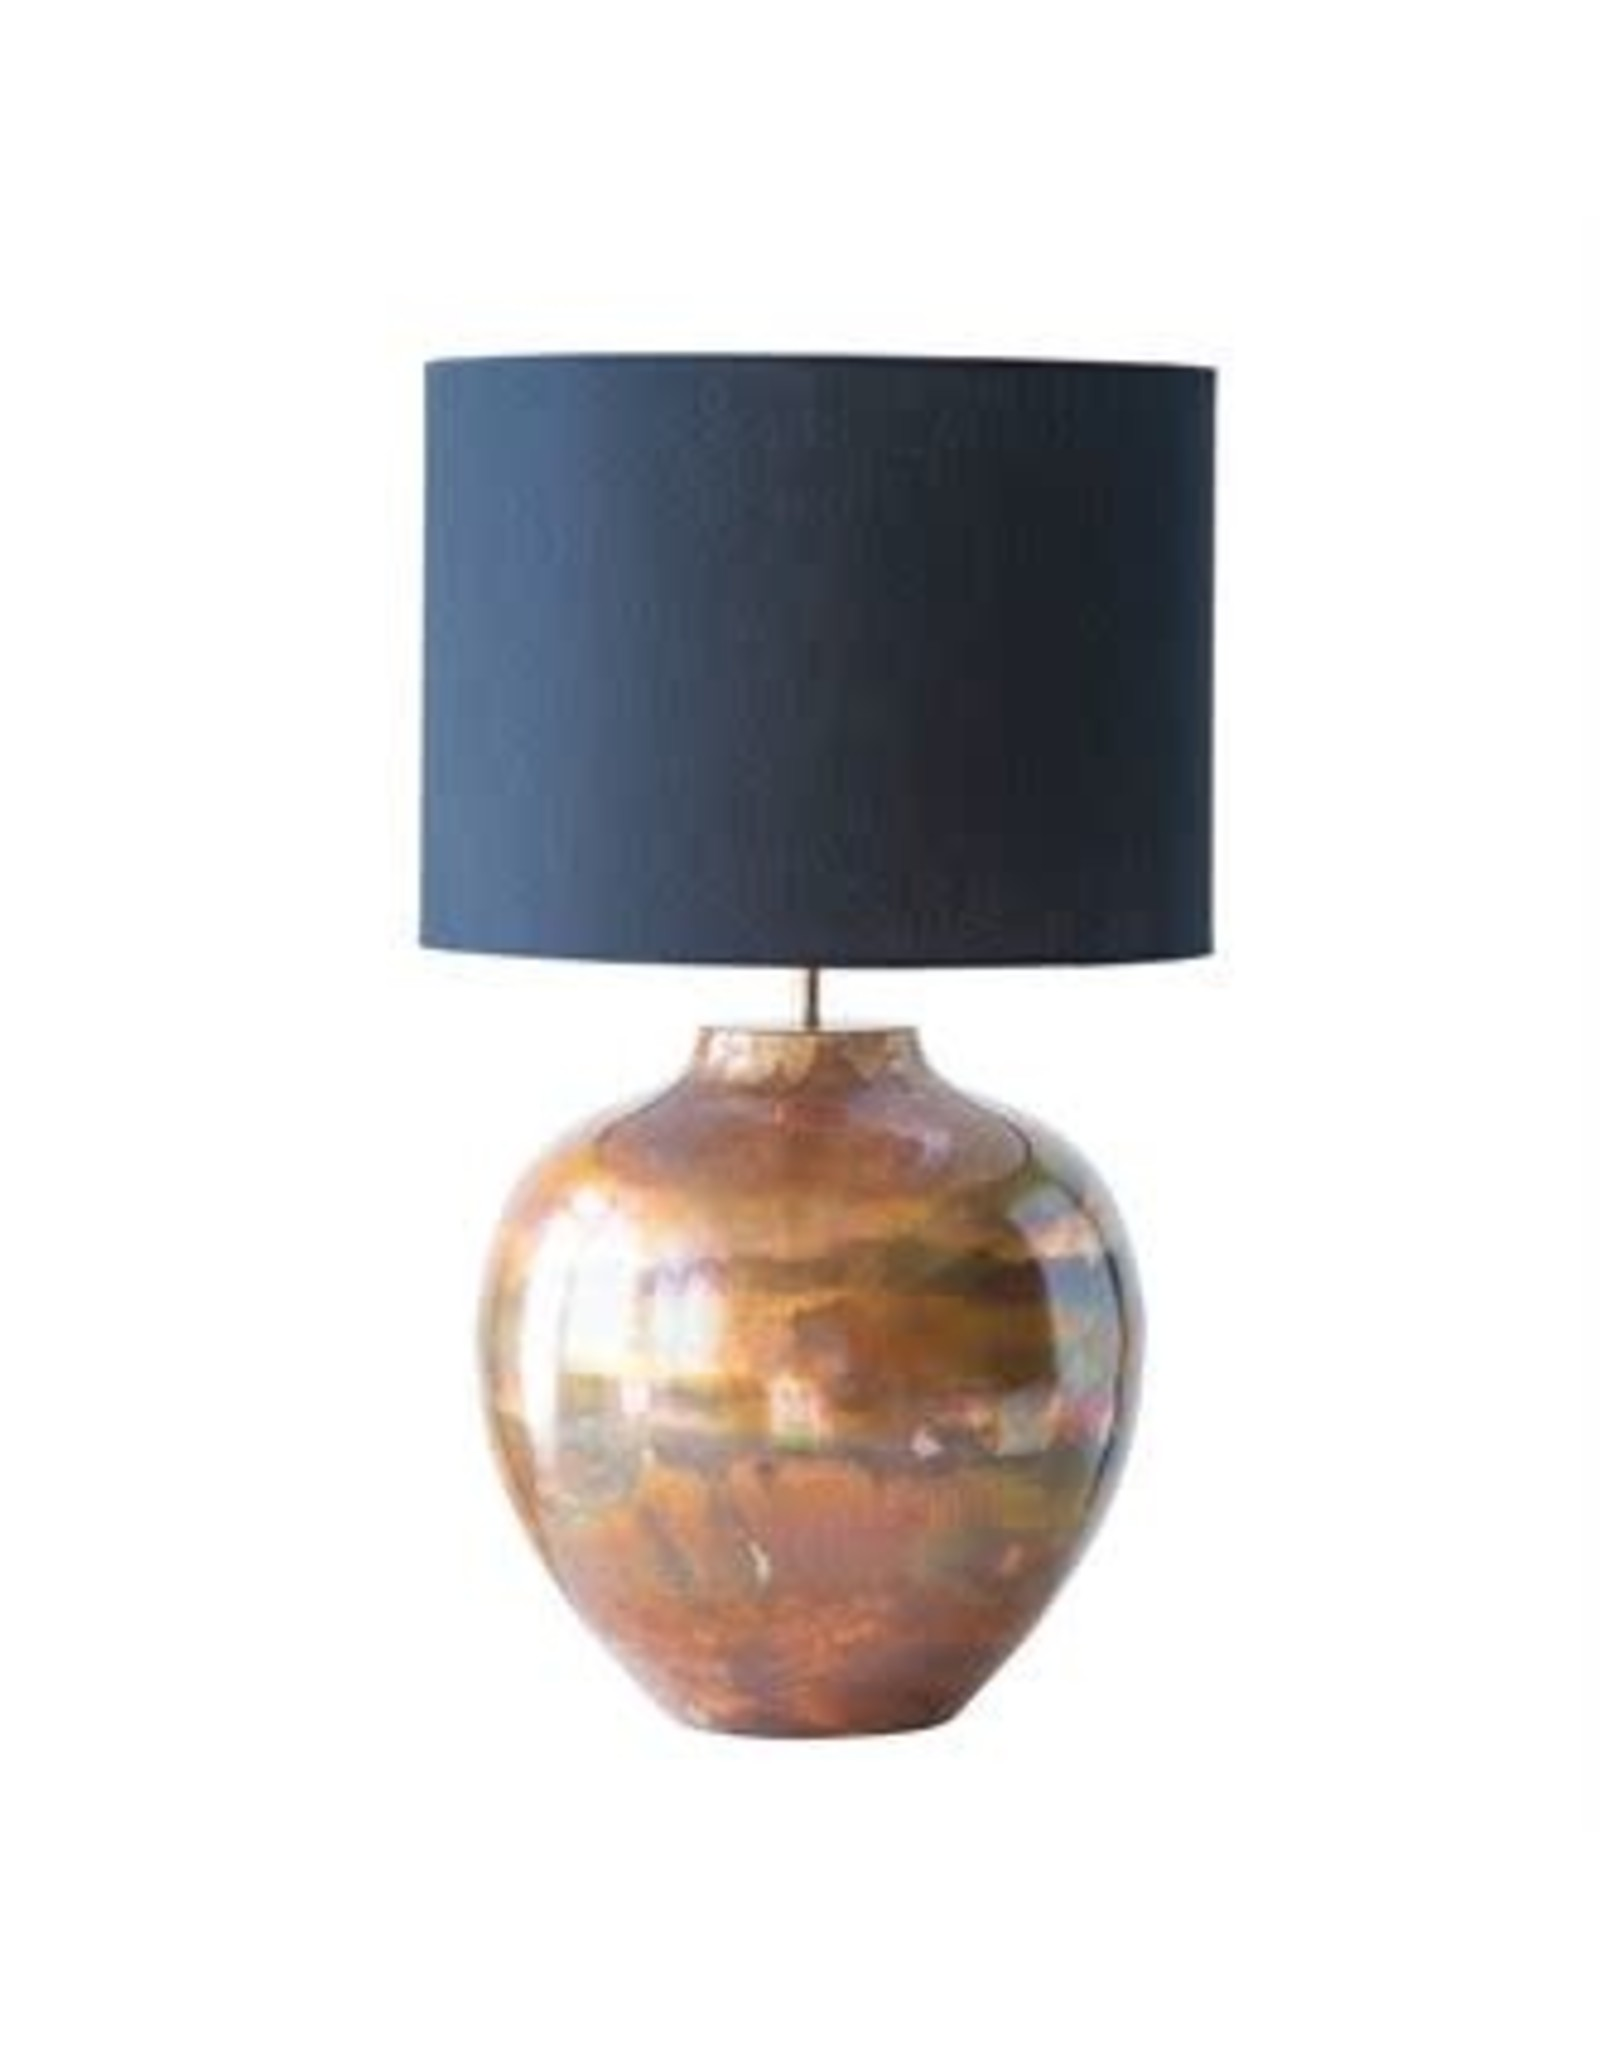 Copper Metal Table Lamp w/ Black Shade